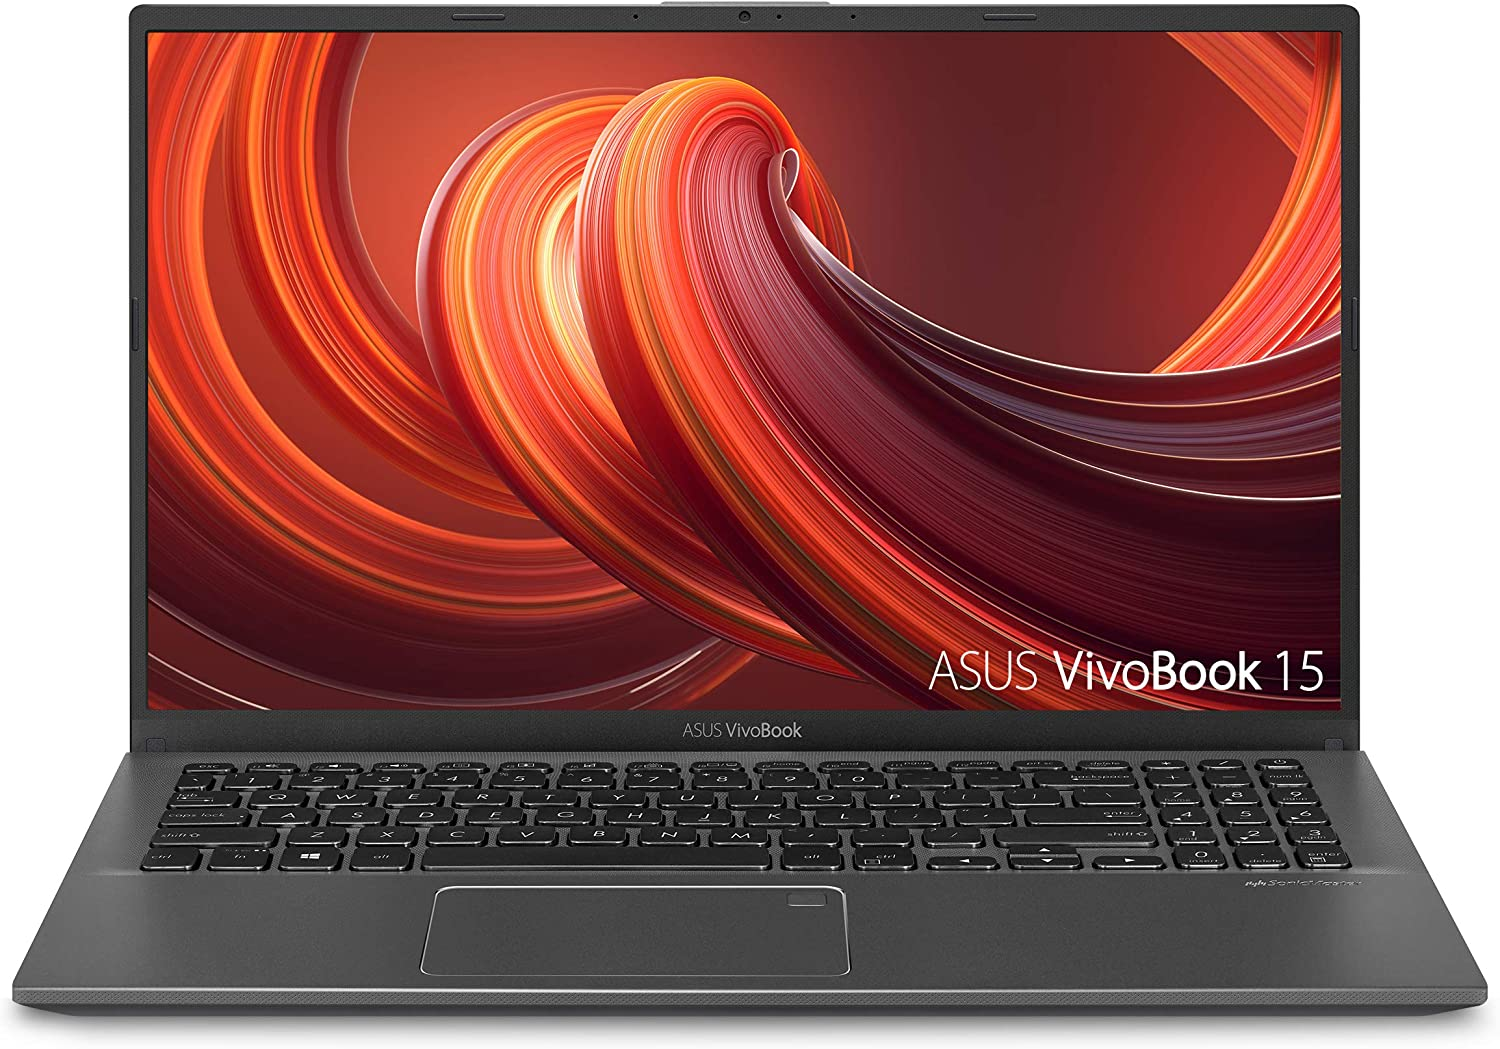 ASUS VivoBook 15 15.6 Inch FHD, AMD Ryzen 3 3200U up to 3.5GHz, 8GB DDR4 RAM, 128GB SSD